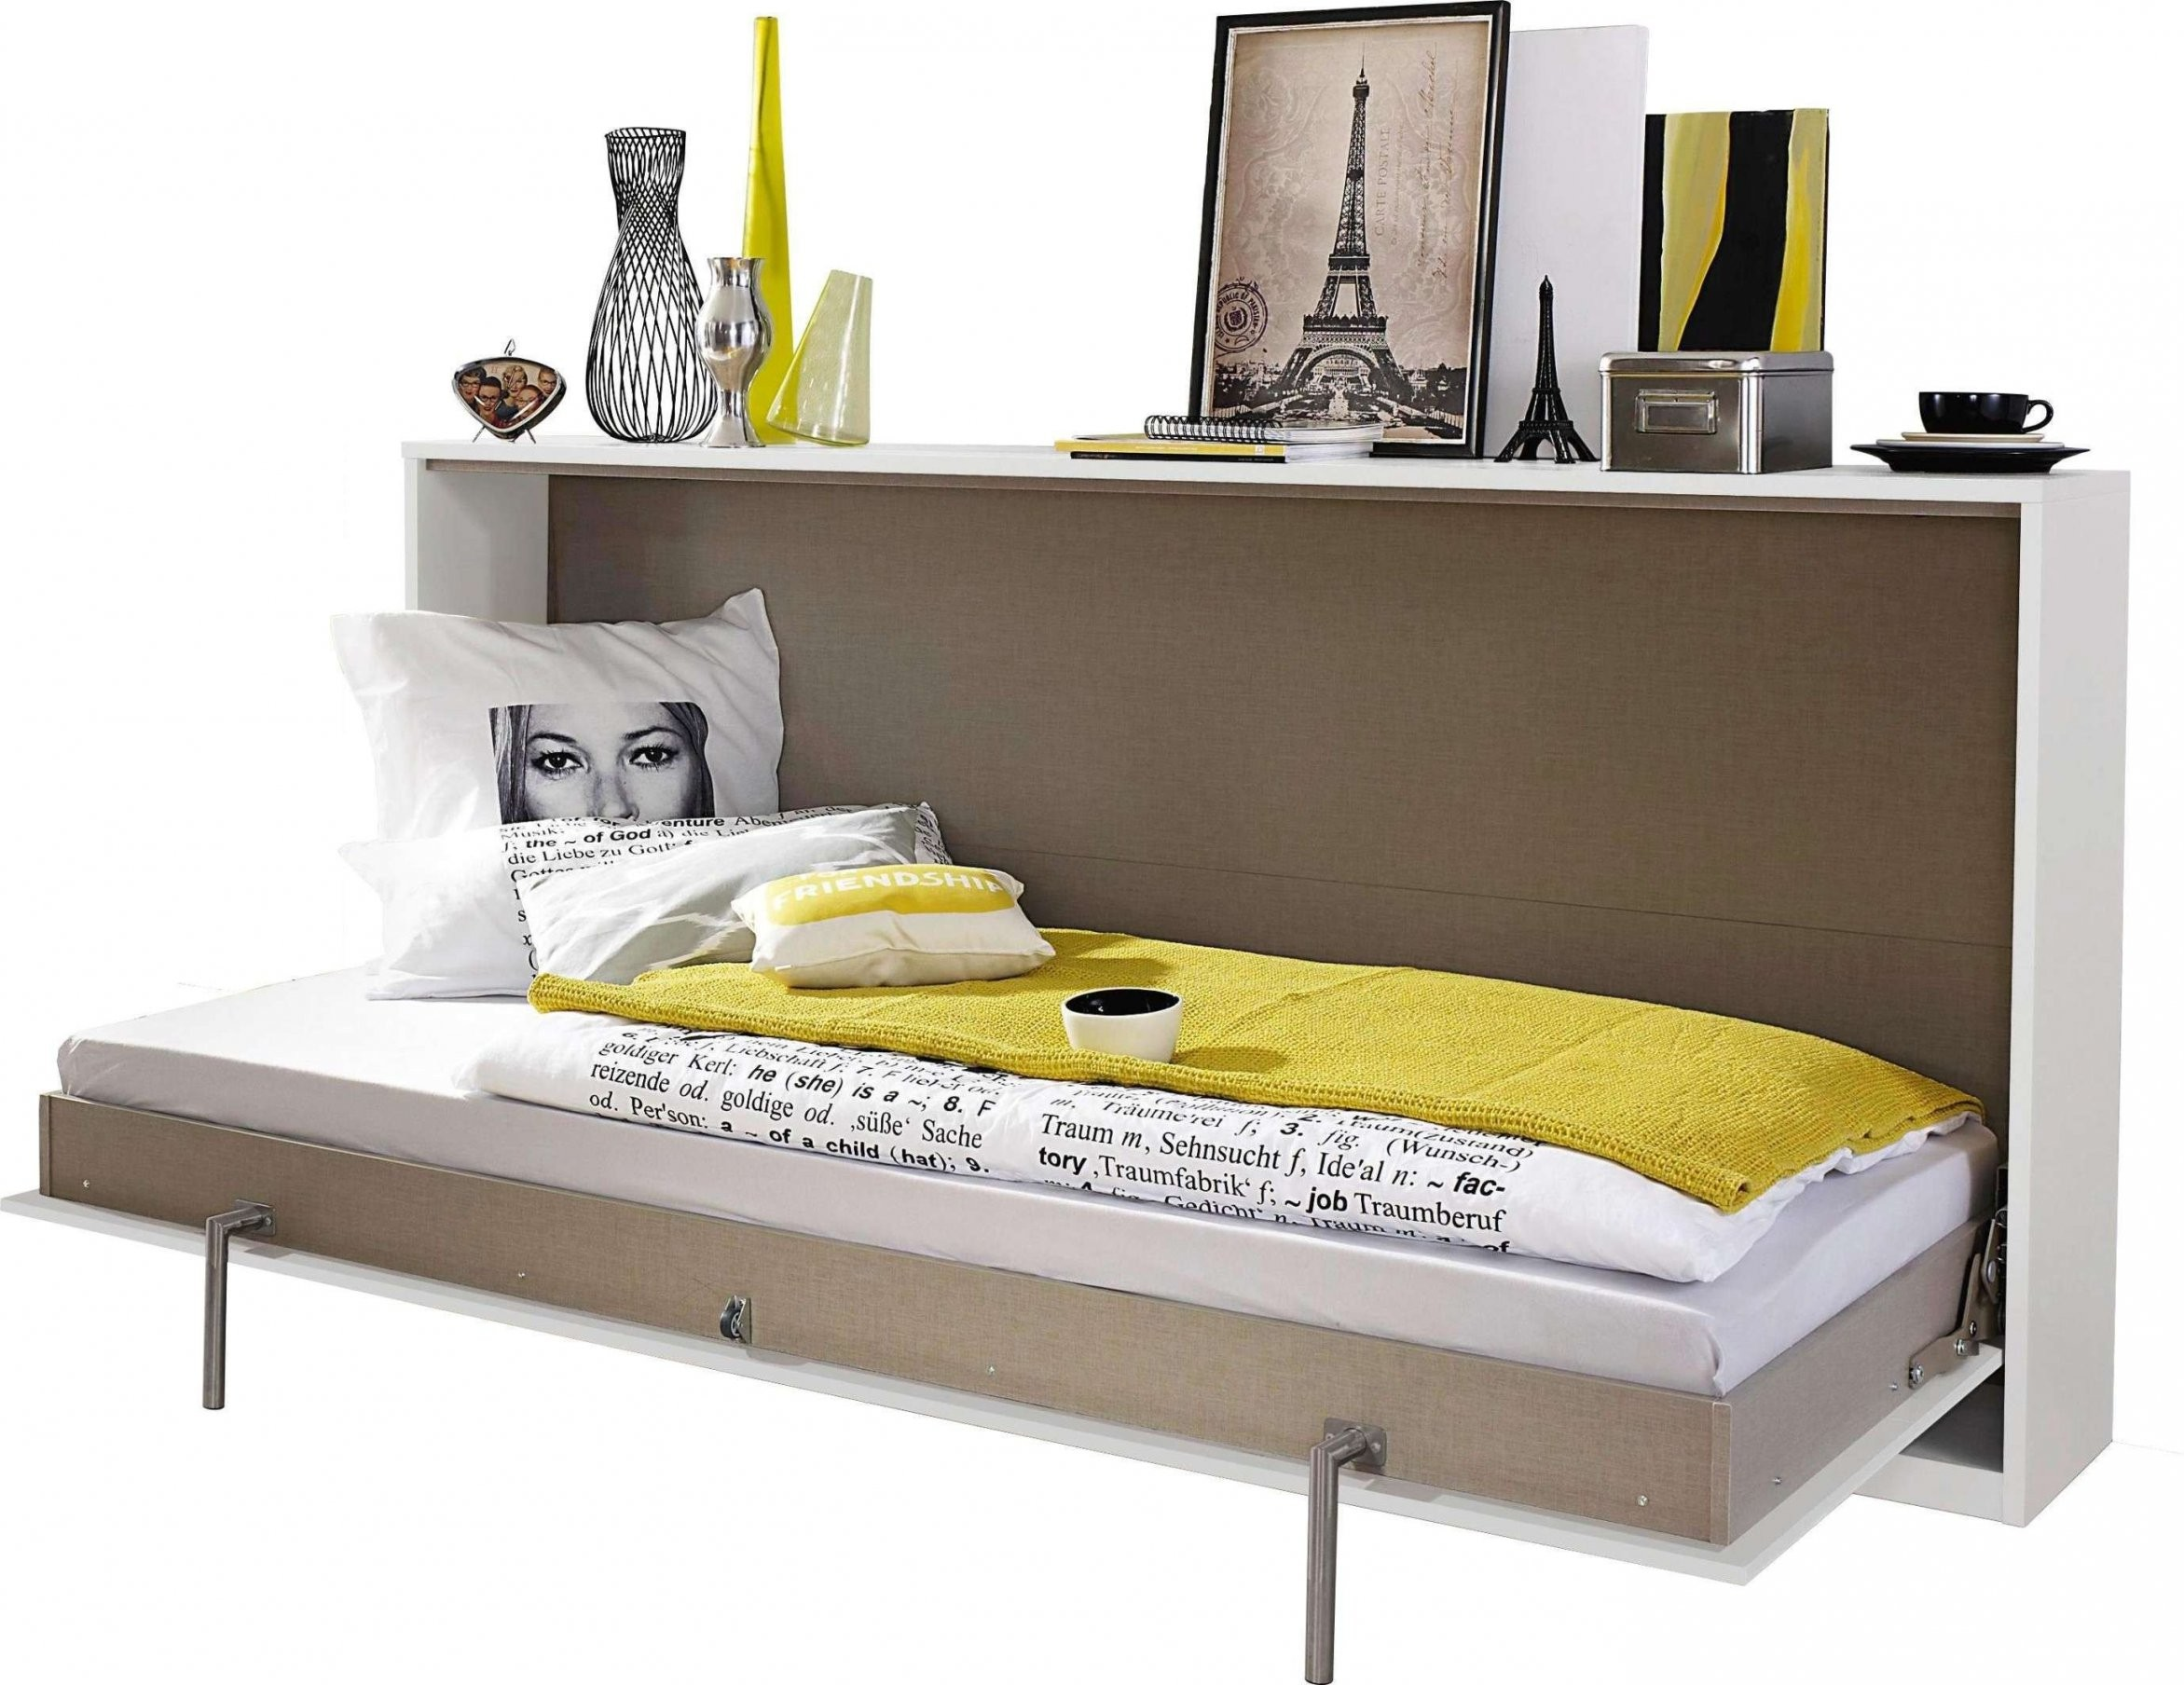 ikea kinderbett gebraucht beste bett 140 200 gebraucht. Black Bedroom Furniture Sets. Home Design Ideas